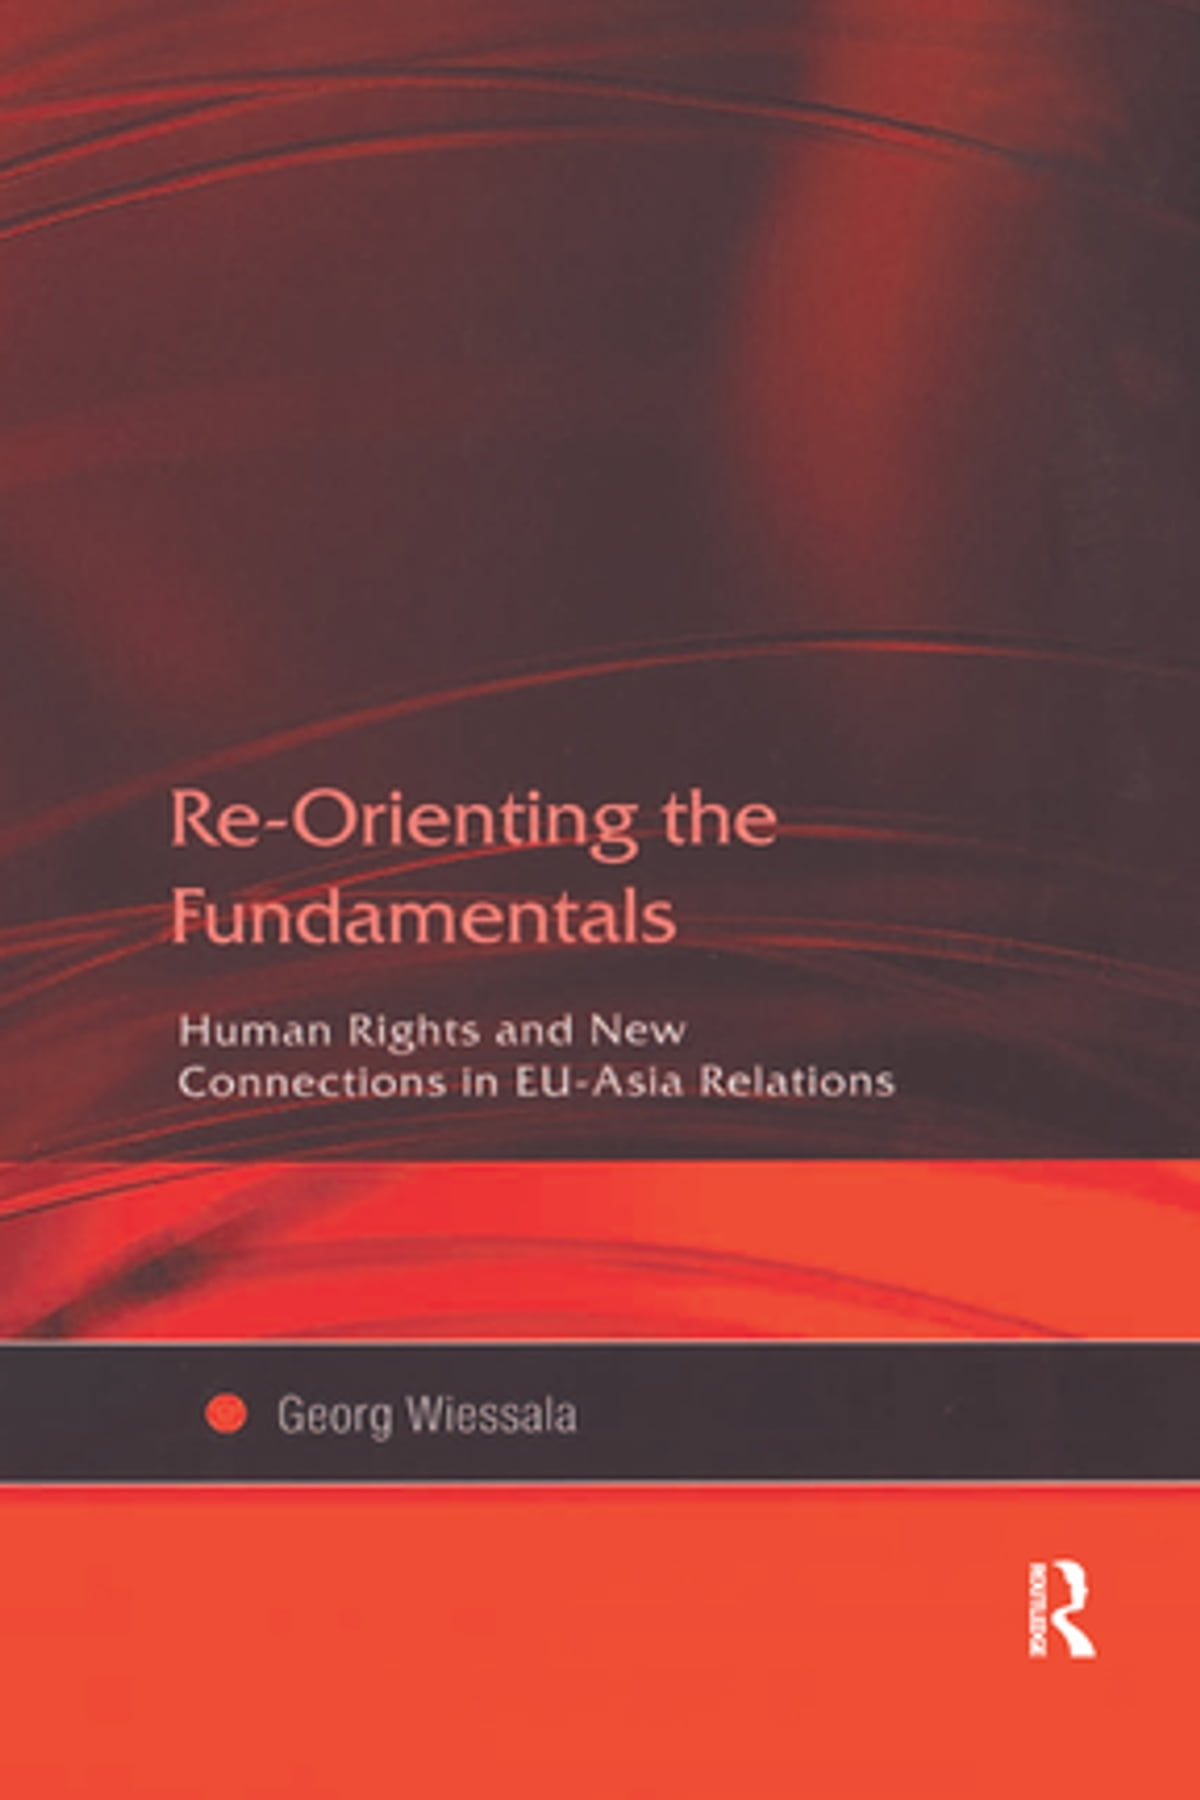 Re-Orienting the Fundamentals: Human Rights and New Connections in EU-Asia Relations